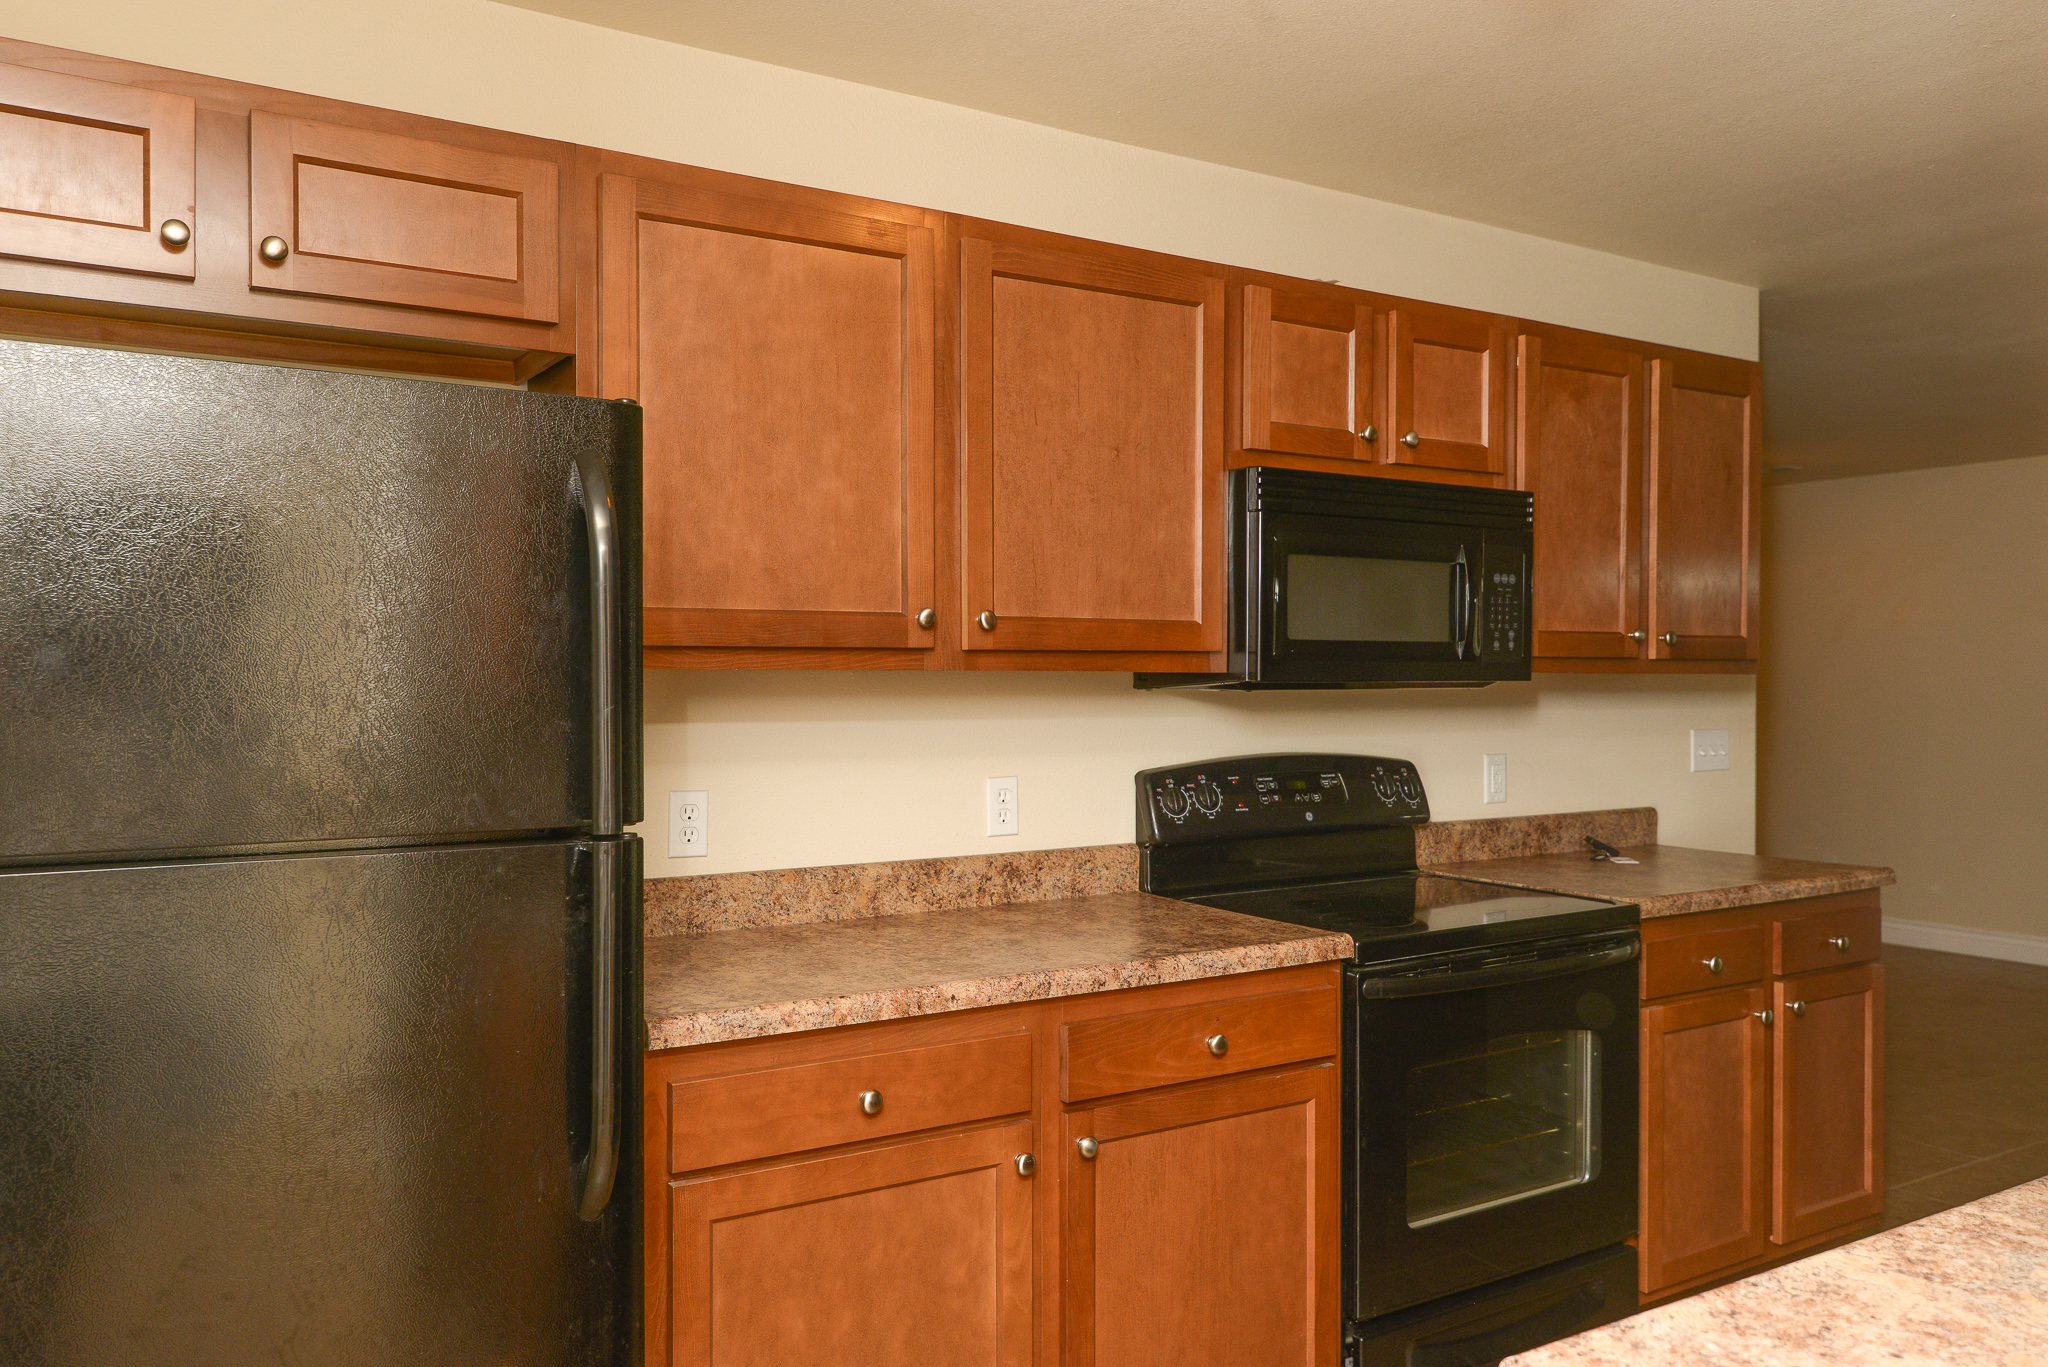 Home-For-Rent-Jefferson-City-Holts-Summit-Missouri-65109-Rentals-Property -Management-Capital-Investment-Realty (8)